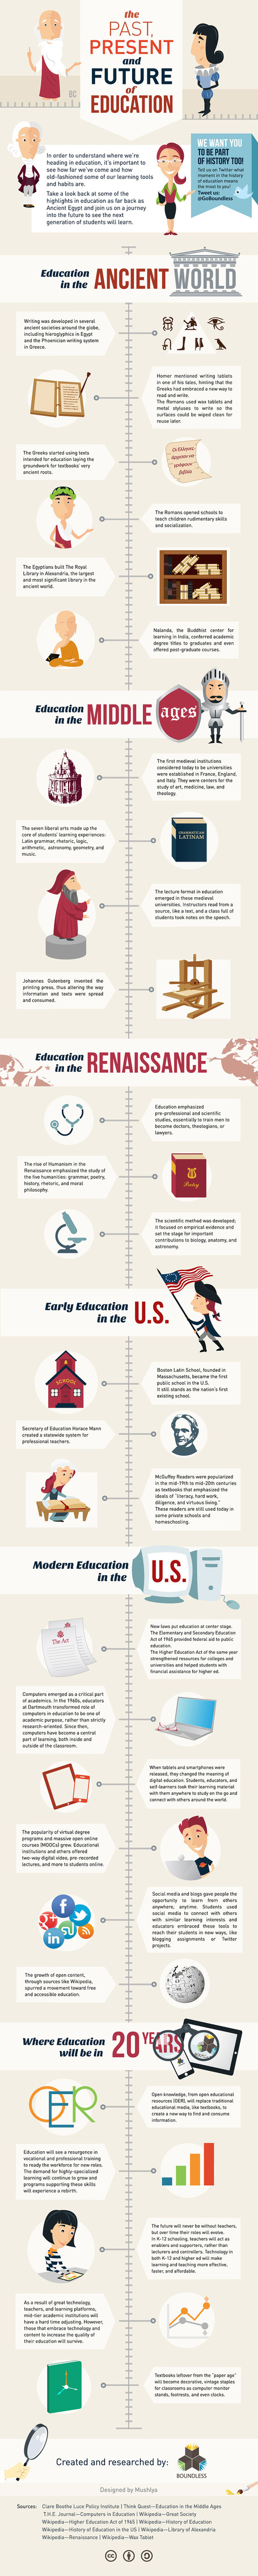 Infographic: The History of Education | Contactos sinápticos | Scoop.it